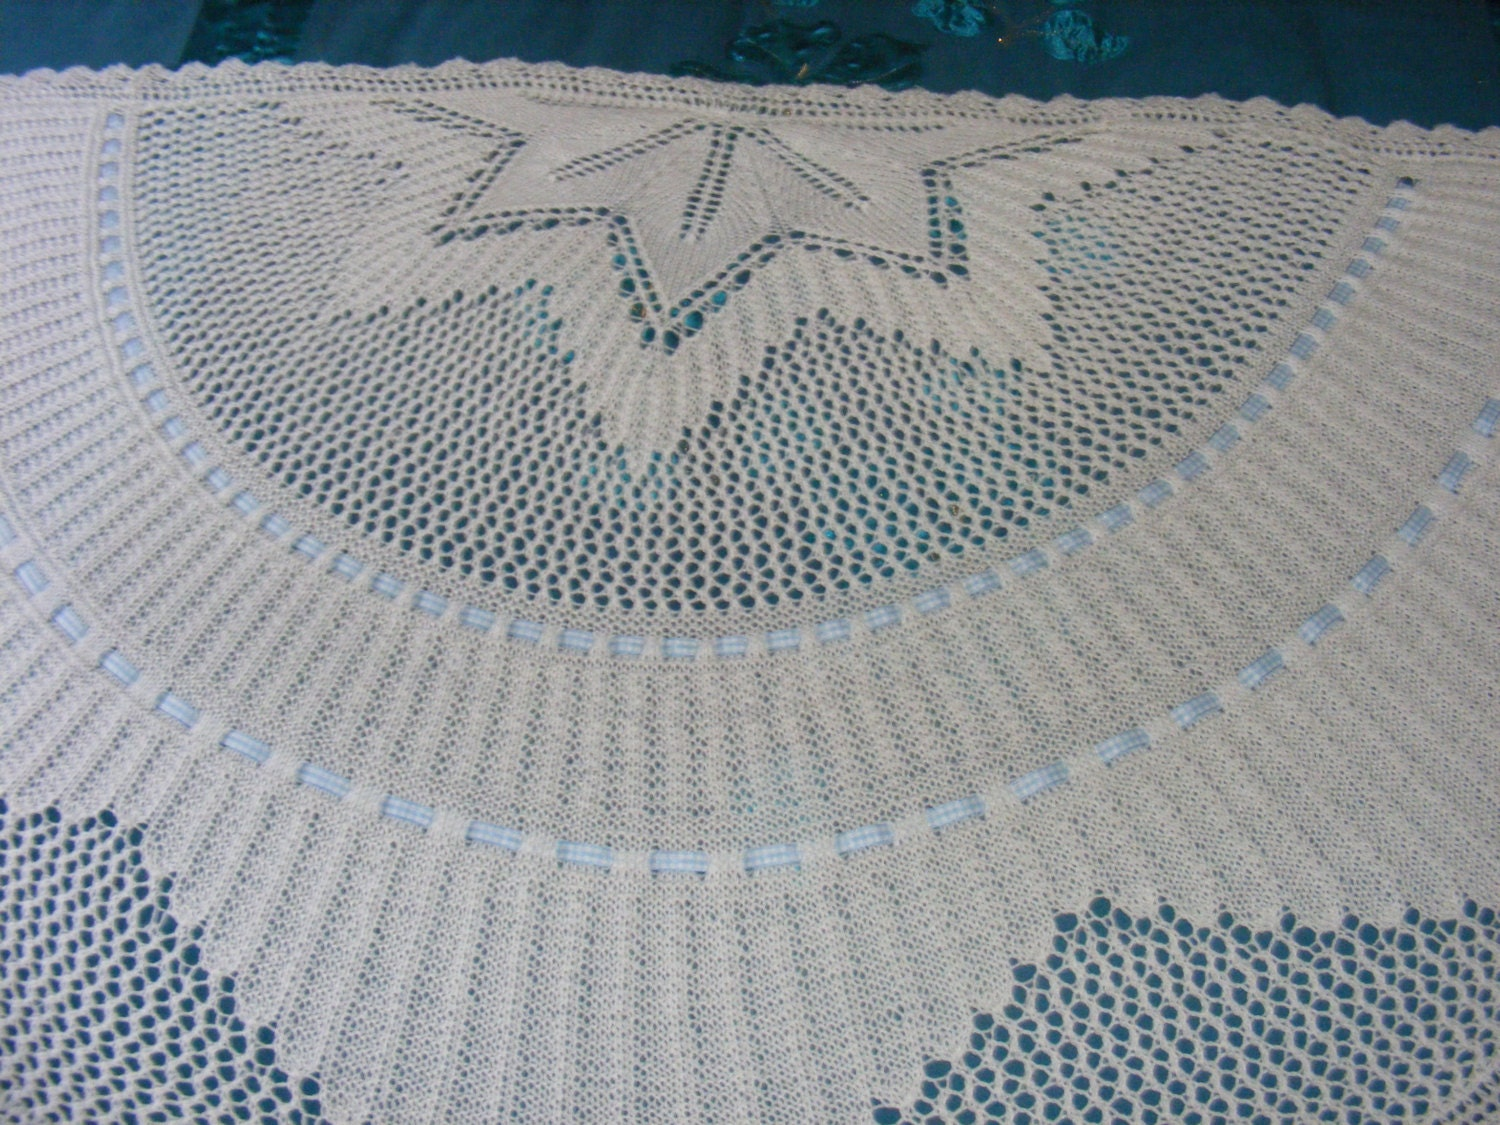 Knitting Patterns For Circular Shawls : Nemesis semi-circular baby shawl knitting pattern in 4ply